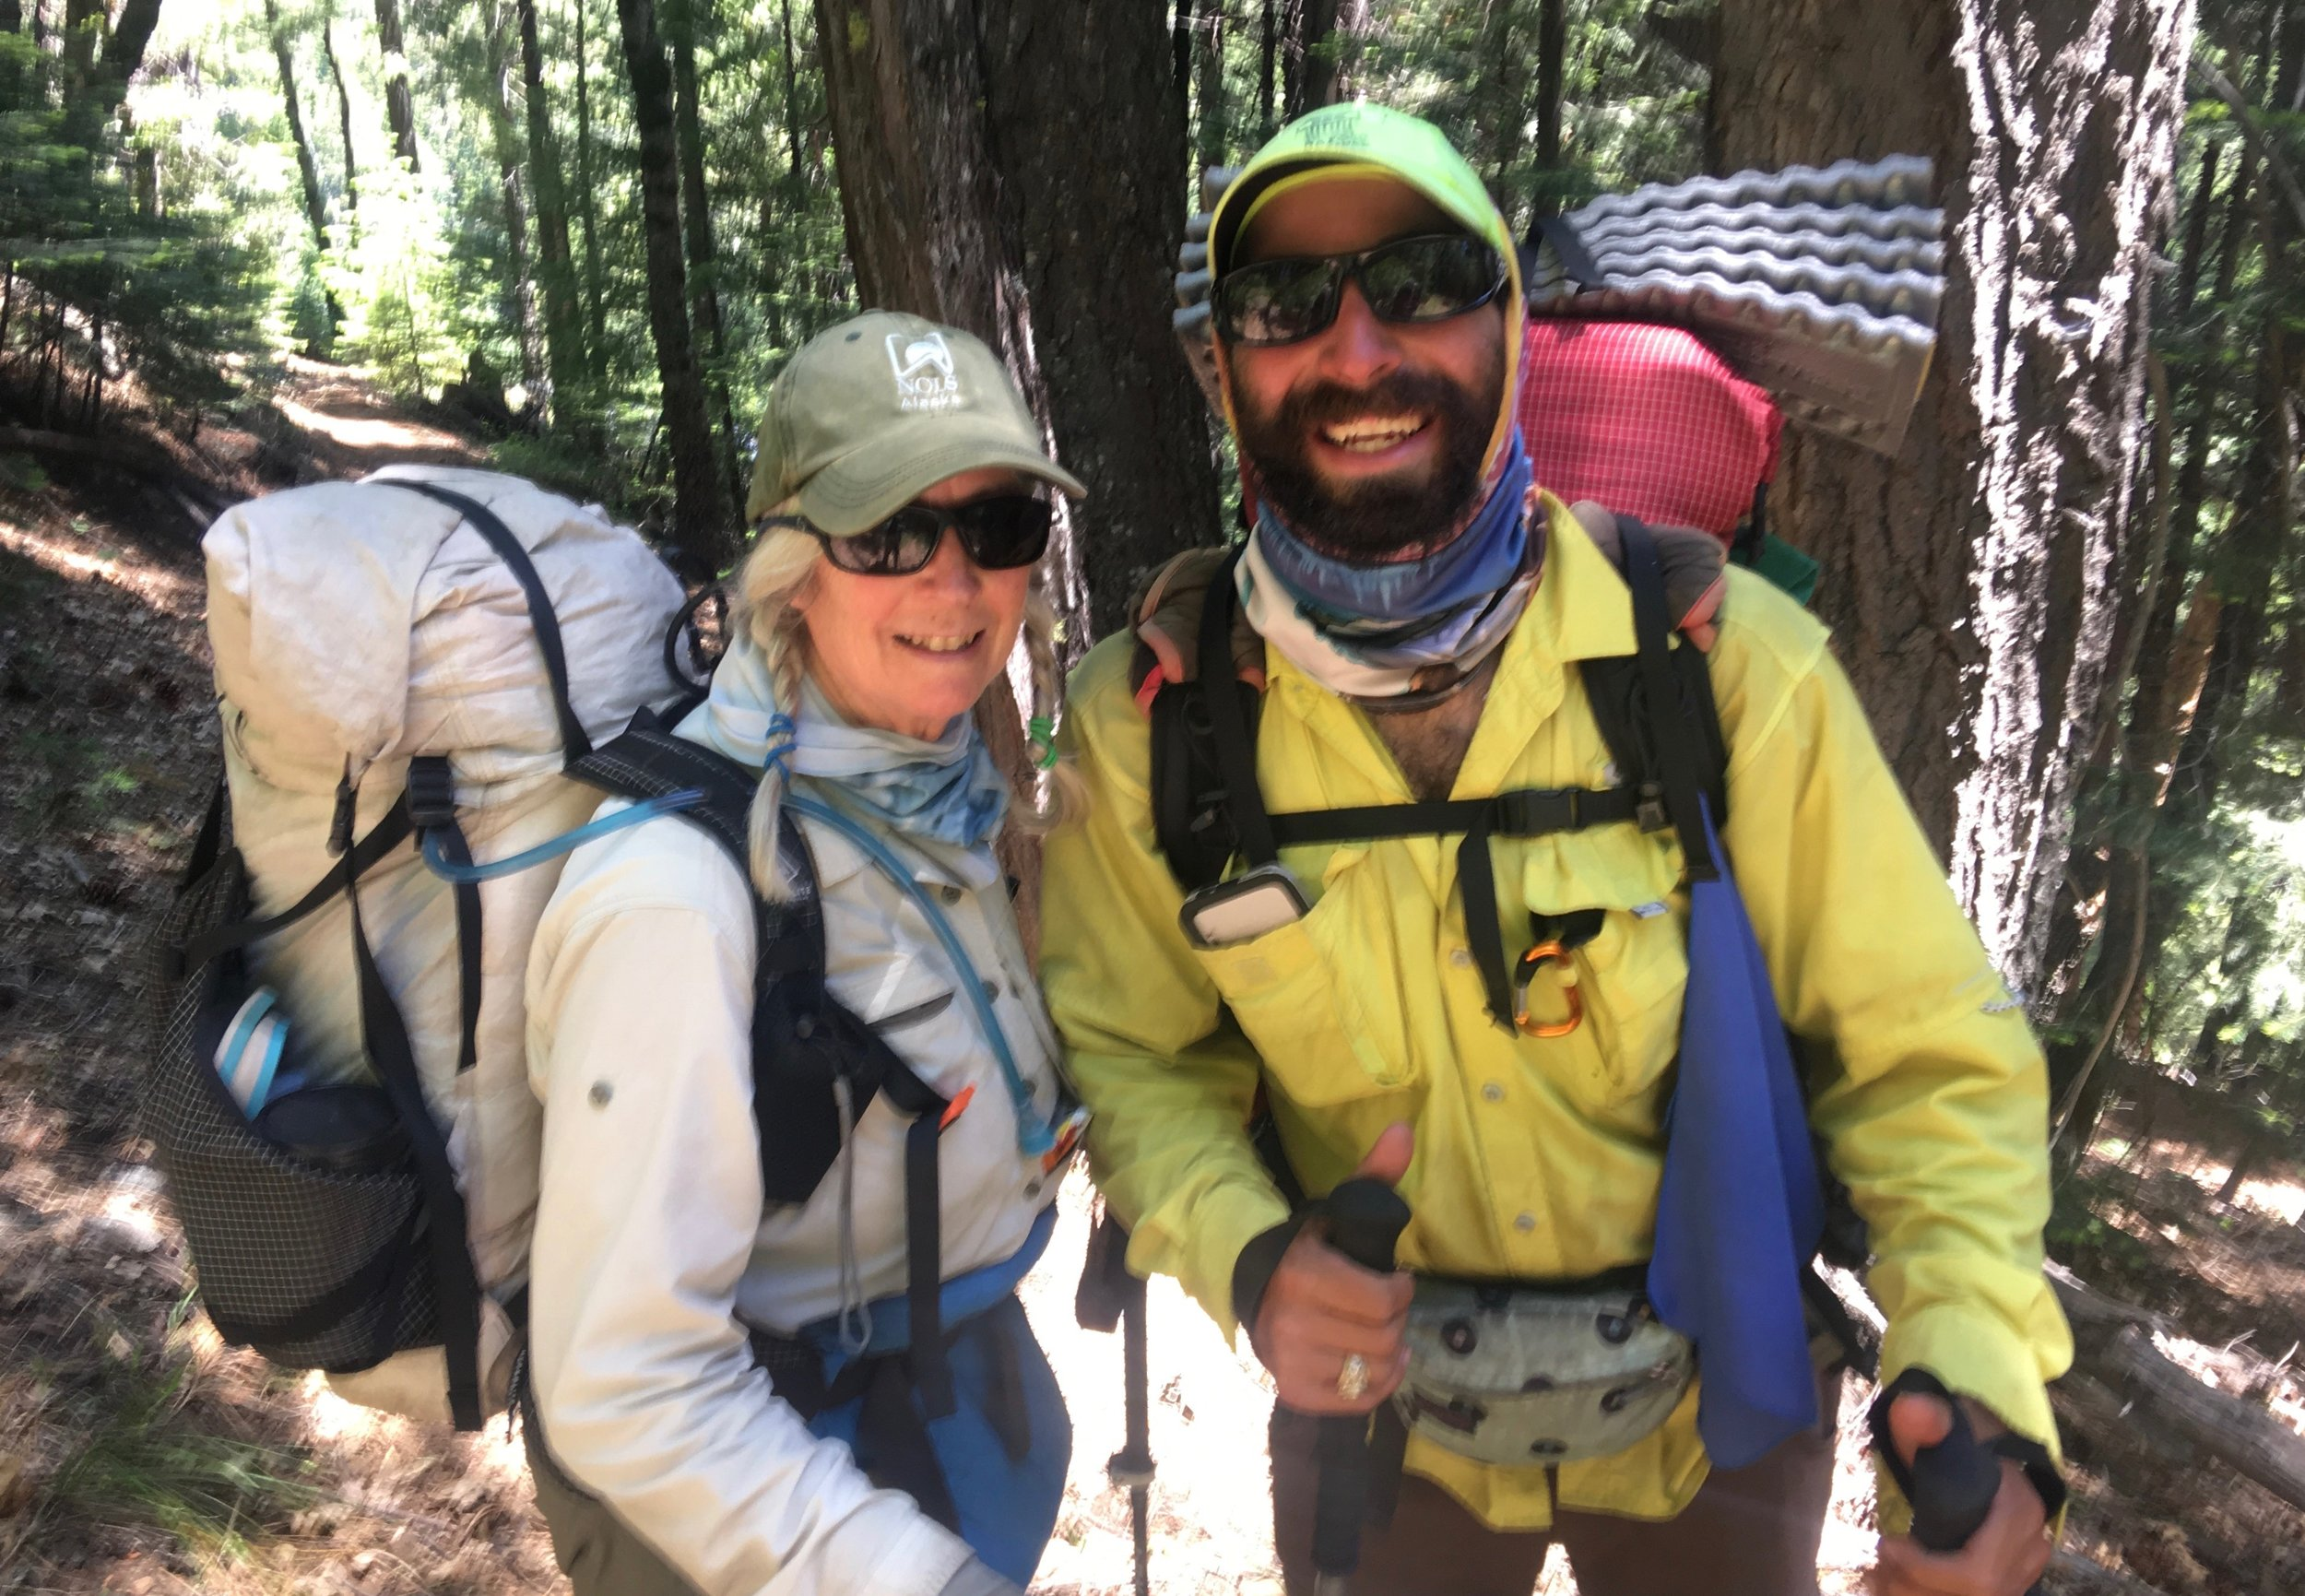 We had hiked with him for several days in the dessert section and had also overlapped in a town, where he had to take several days off for an injury. He was from a southern state and had never been in snow. Hiking thru the sierras had given him many stories to share.  He highly recommended the gut buster!